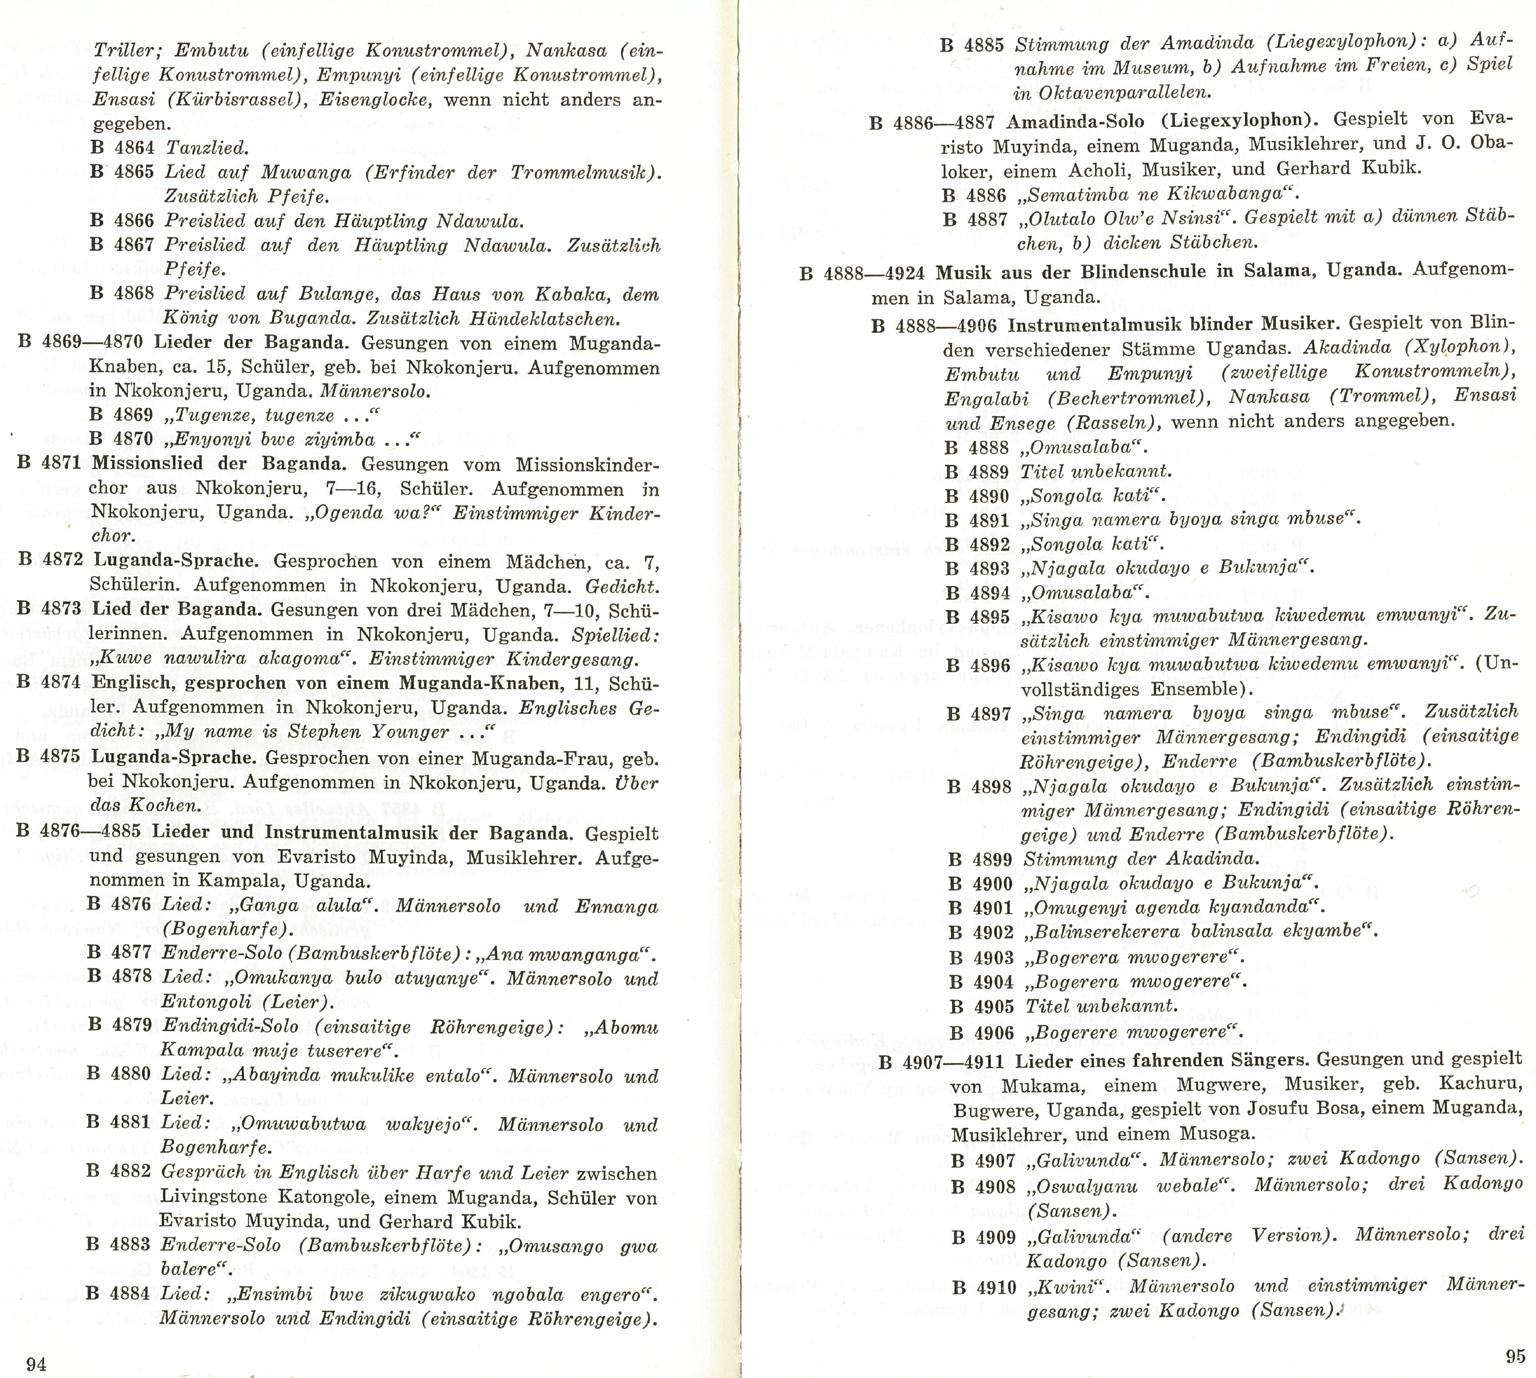 Photo Of The 1966 Catalogue Of The Recording (hermann, Schendl And Schüller 1966)